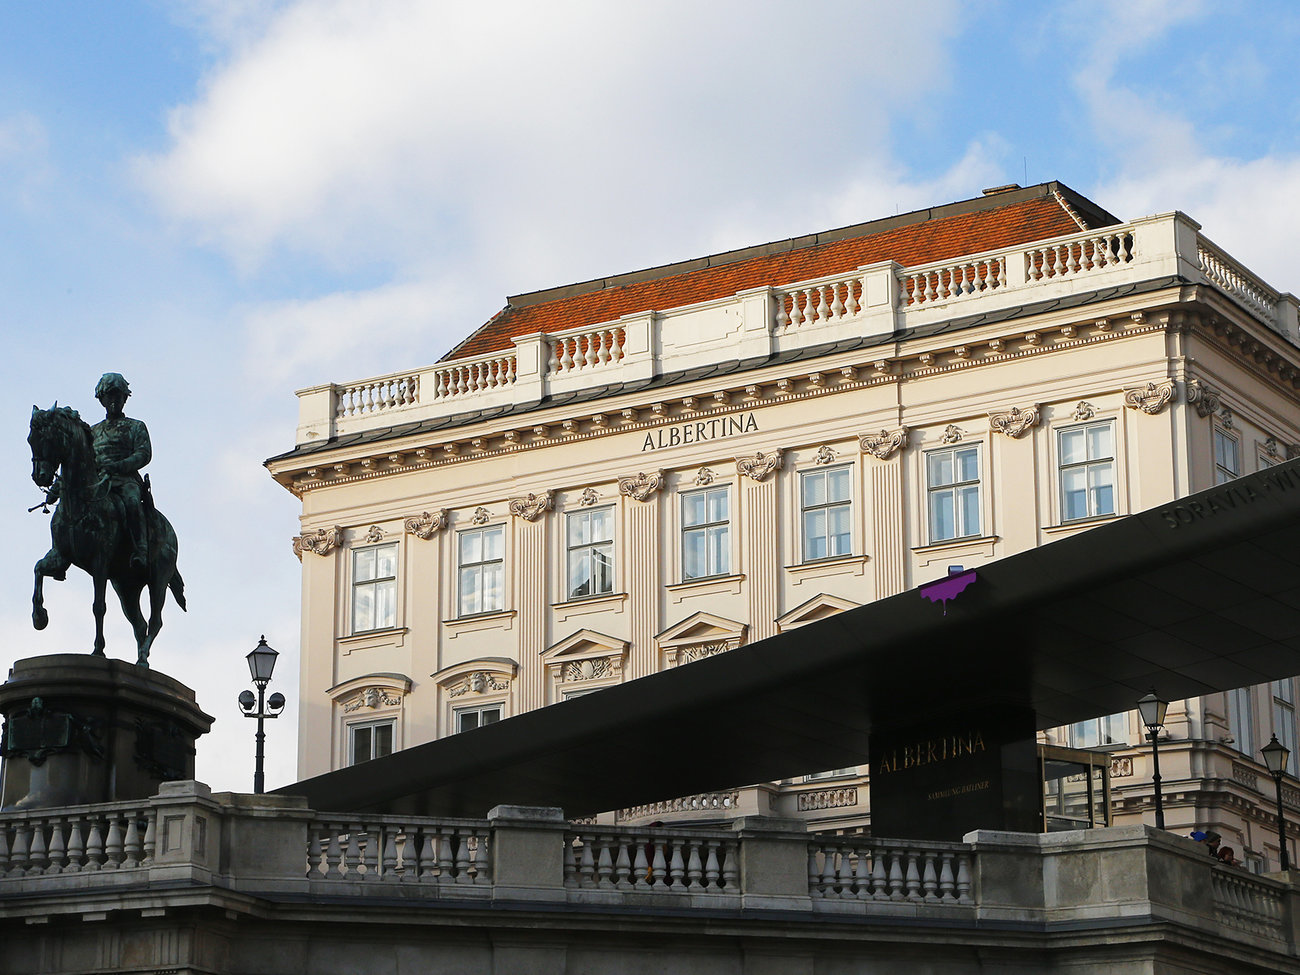 Albertina Museum in Vienna